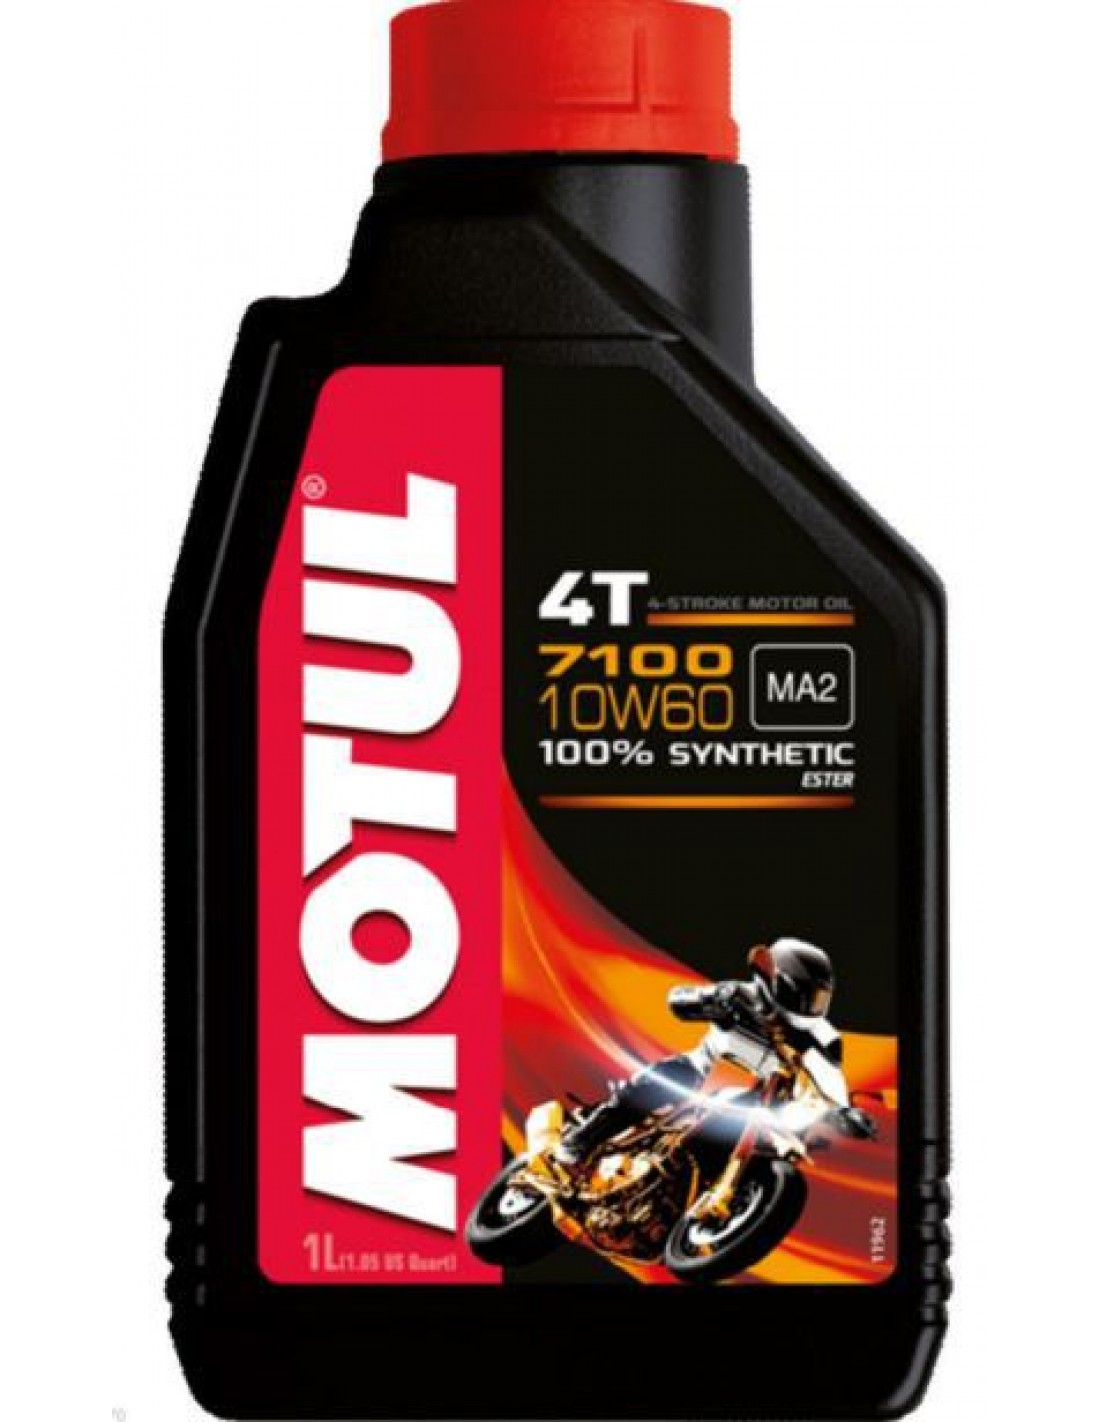 olio motore motul 7100 10w60. Black Bedroom Furniture Sets. Home Design Ideas